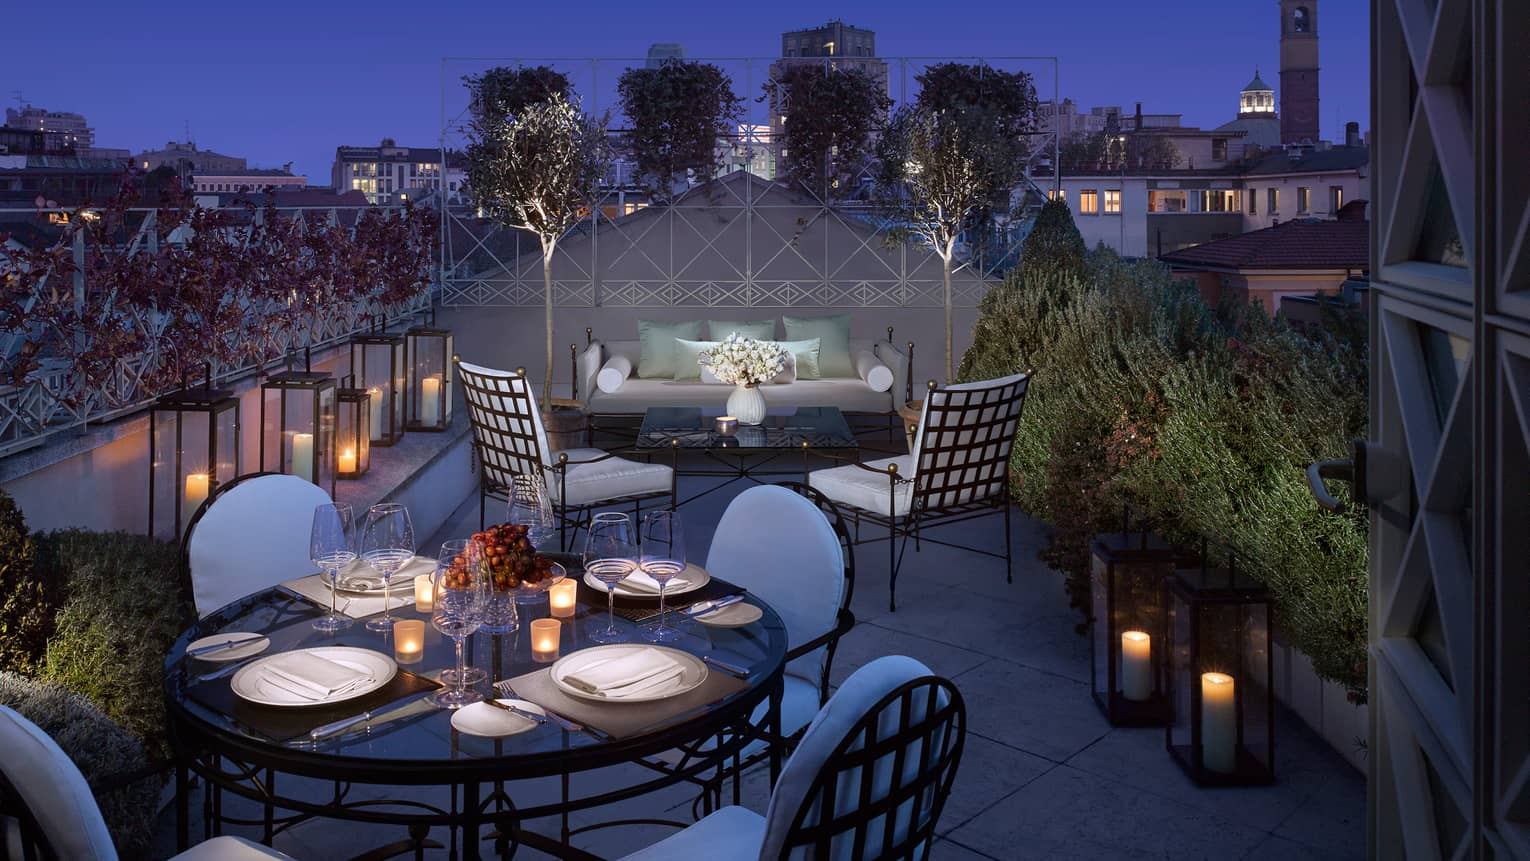 Penthouse Suite lantern-lined rooftop balcony, candle-lit dining table, patio sofa and chairs at night